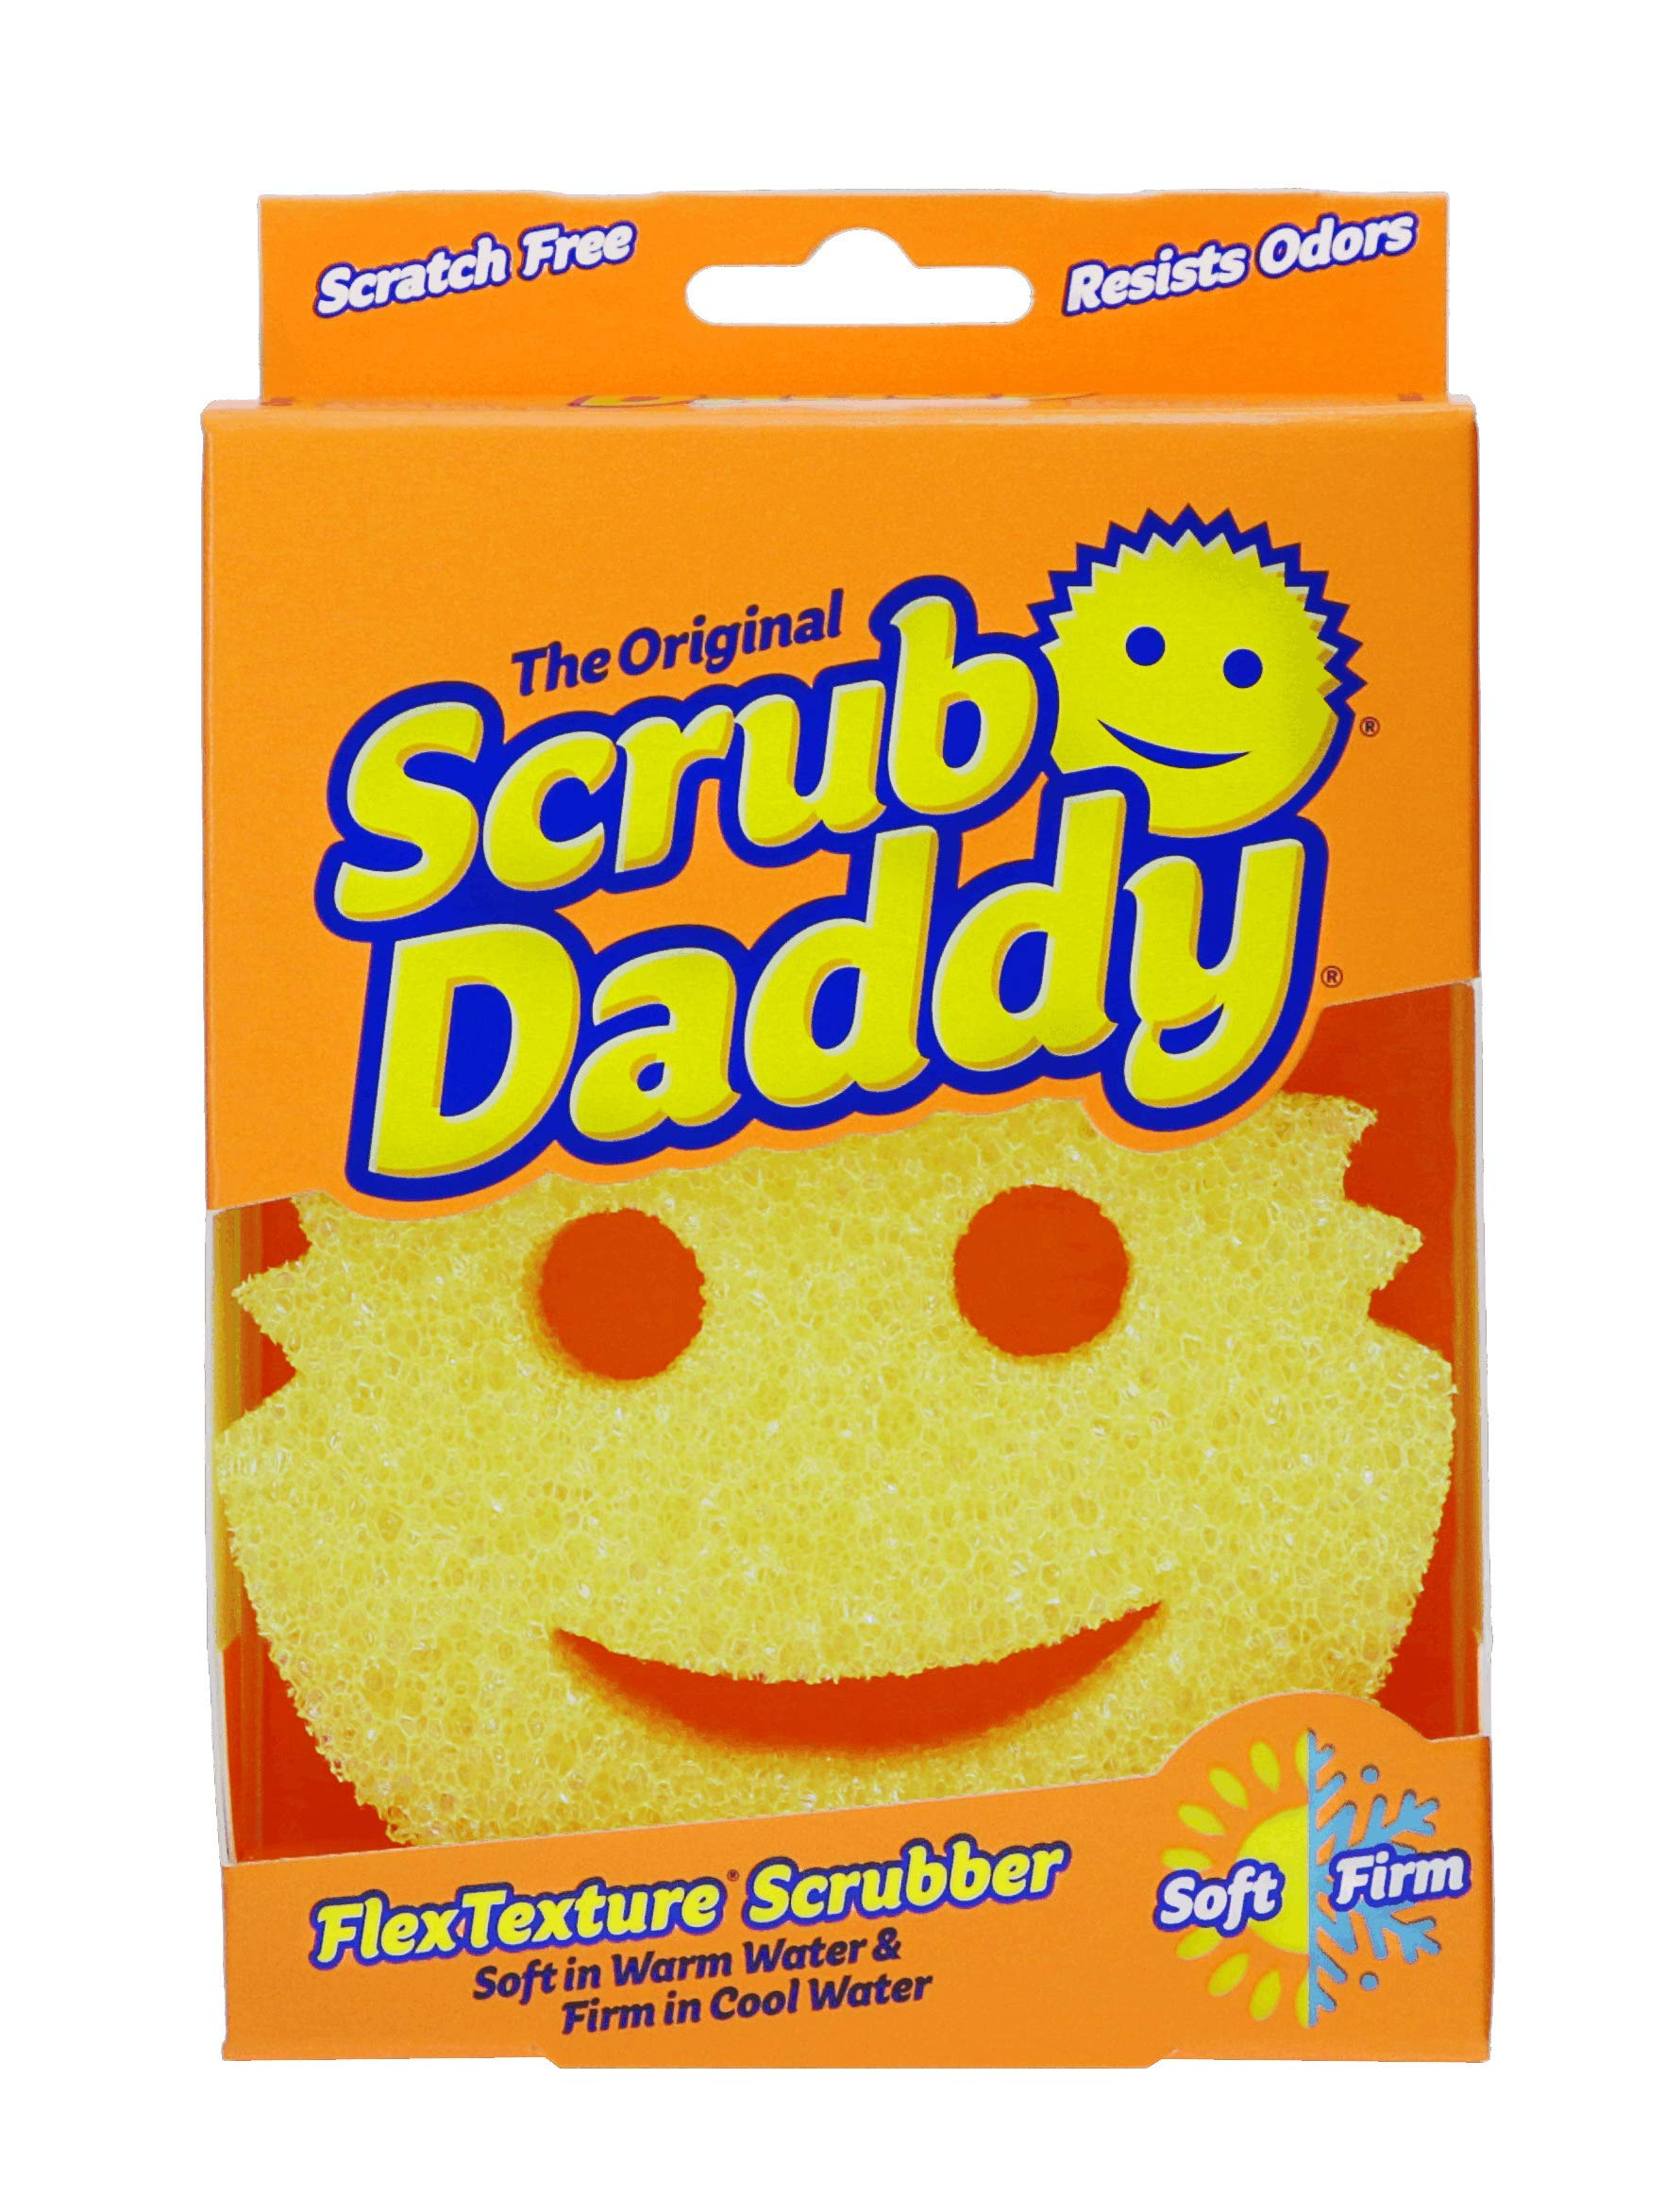 2 pack Deep Cleaning Scratch Free Soft in Warm Water Ergonomic- 3ct Firm in Cold Multi-use Odor Resistant Functional Scrub Daddy Colors FlexTexture Sponge Dishwasher Safe